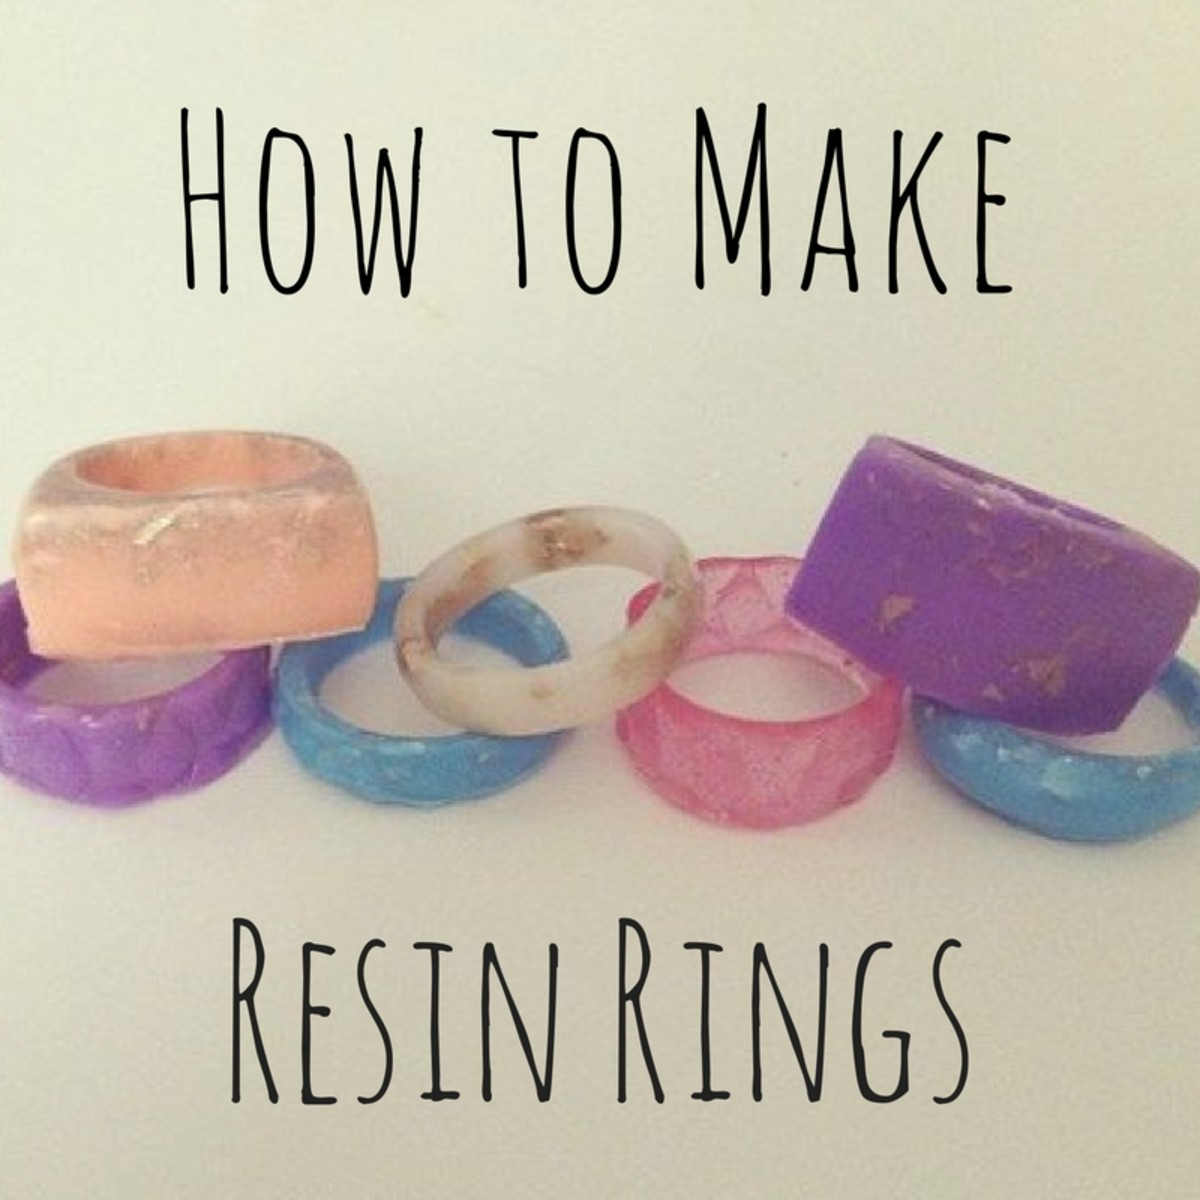 How To Make A Two Story Living Room Cozy: How To Make A Resin Ring